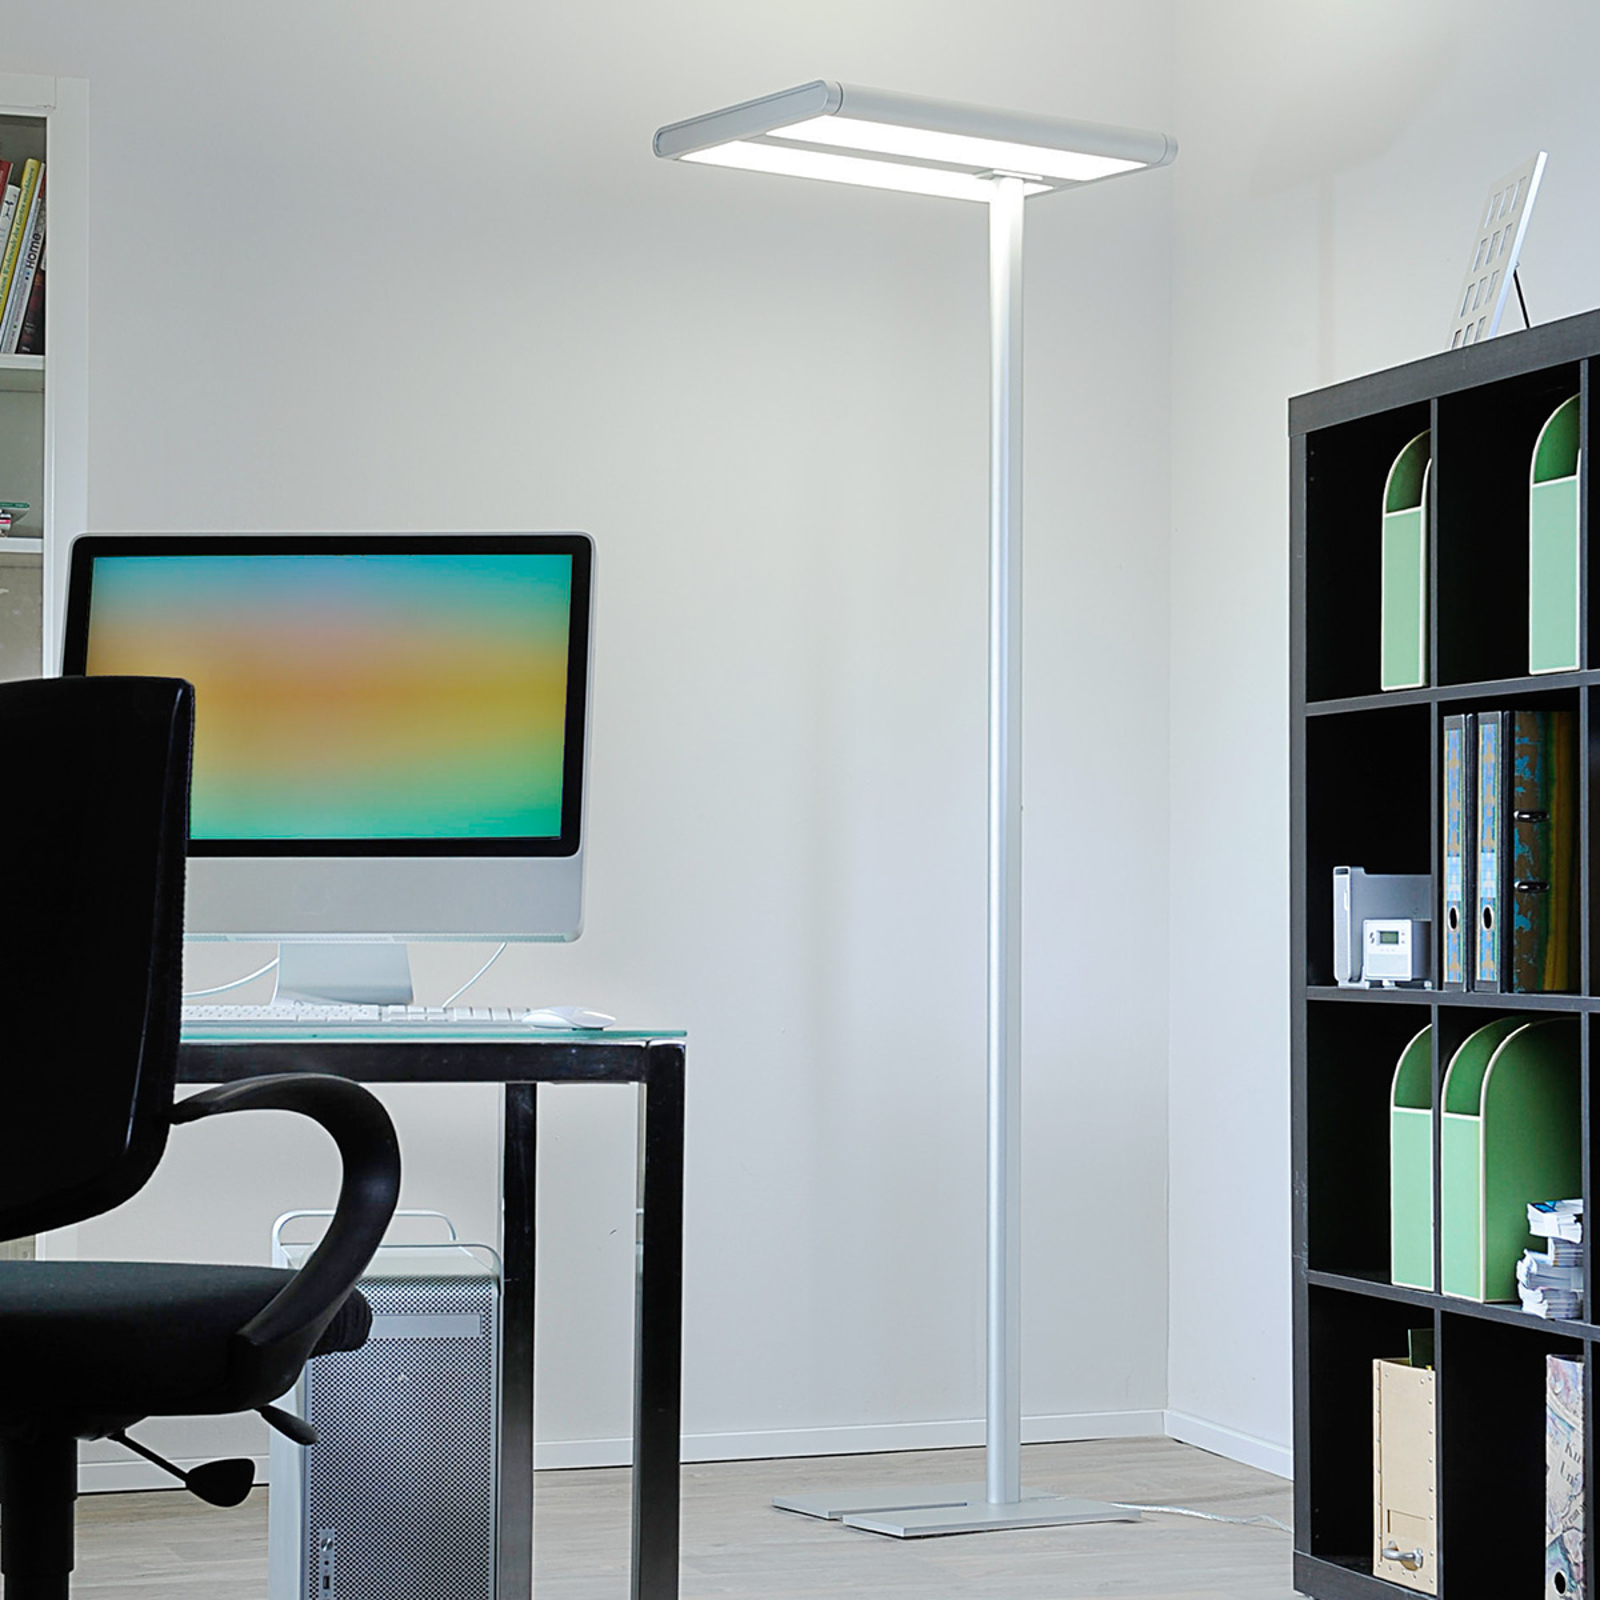 High-quality office floor lamp Quirin with LEDs_9966002_1